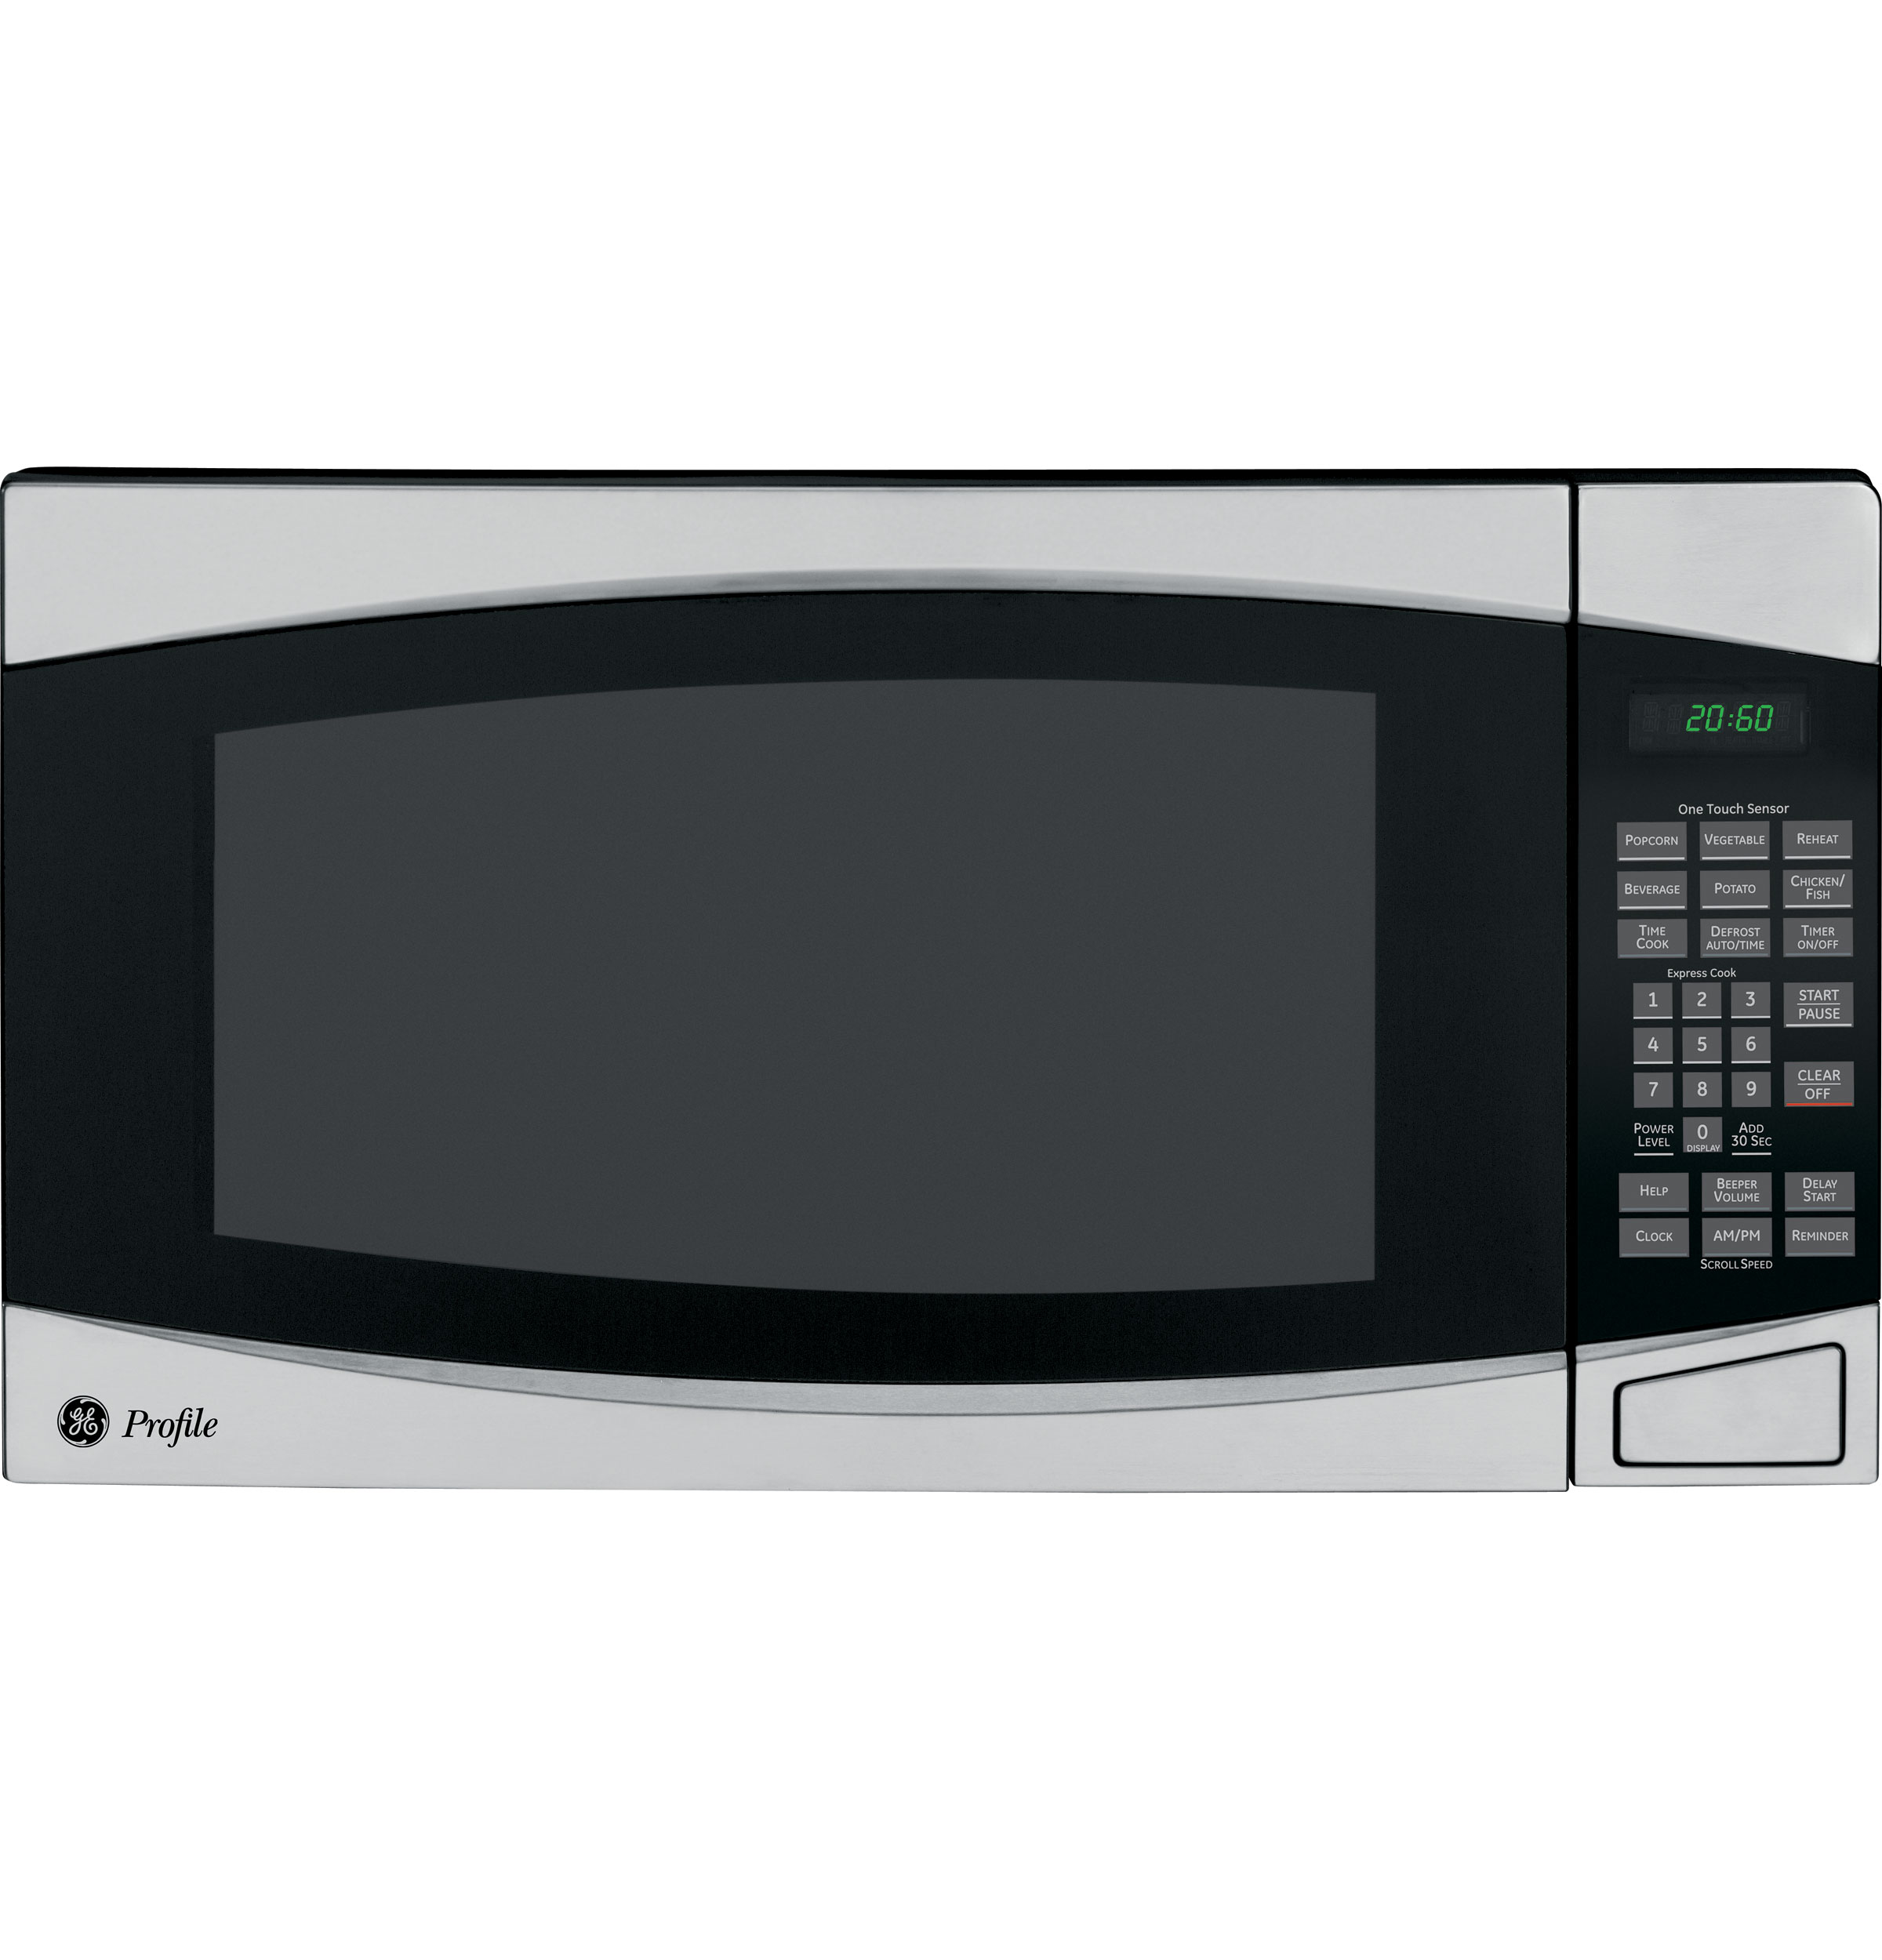 Ge Profile 2 0 Cu Ft Countertop Microwave Oven